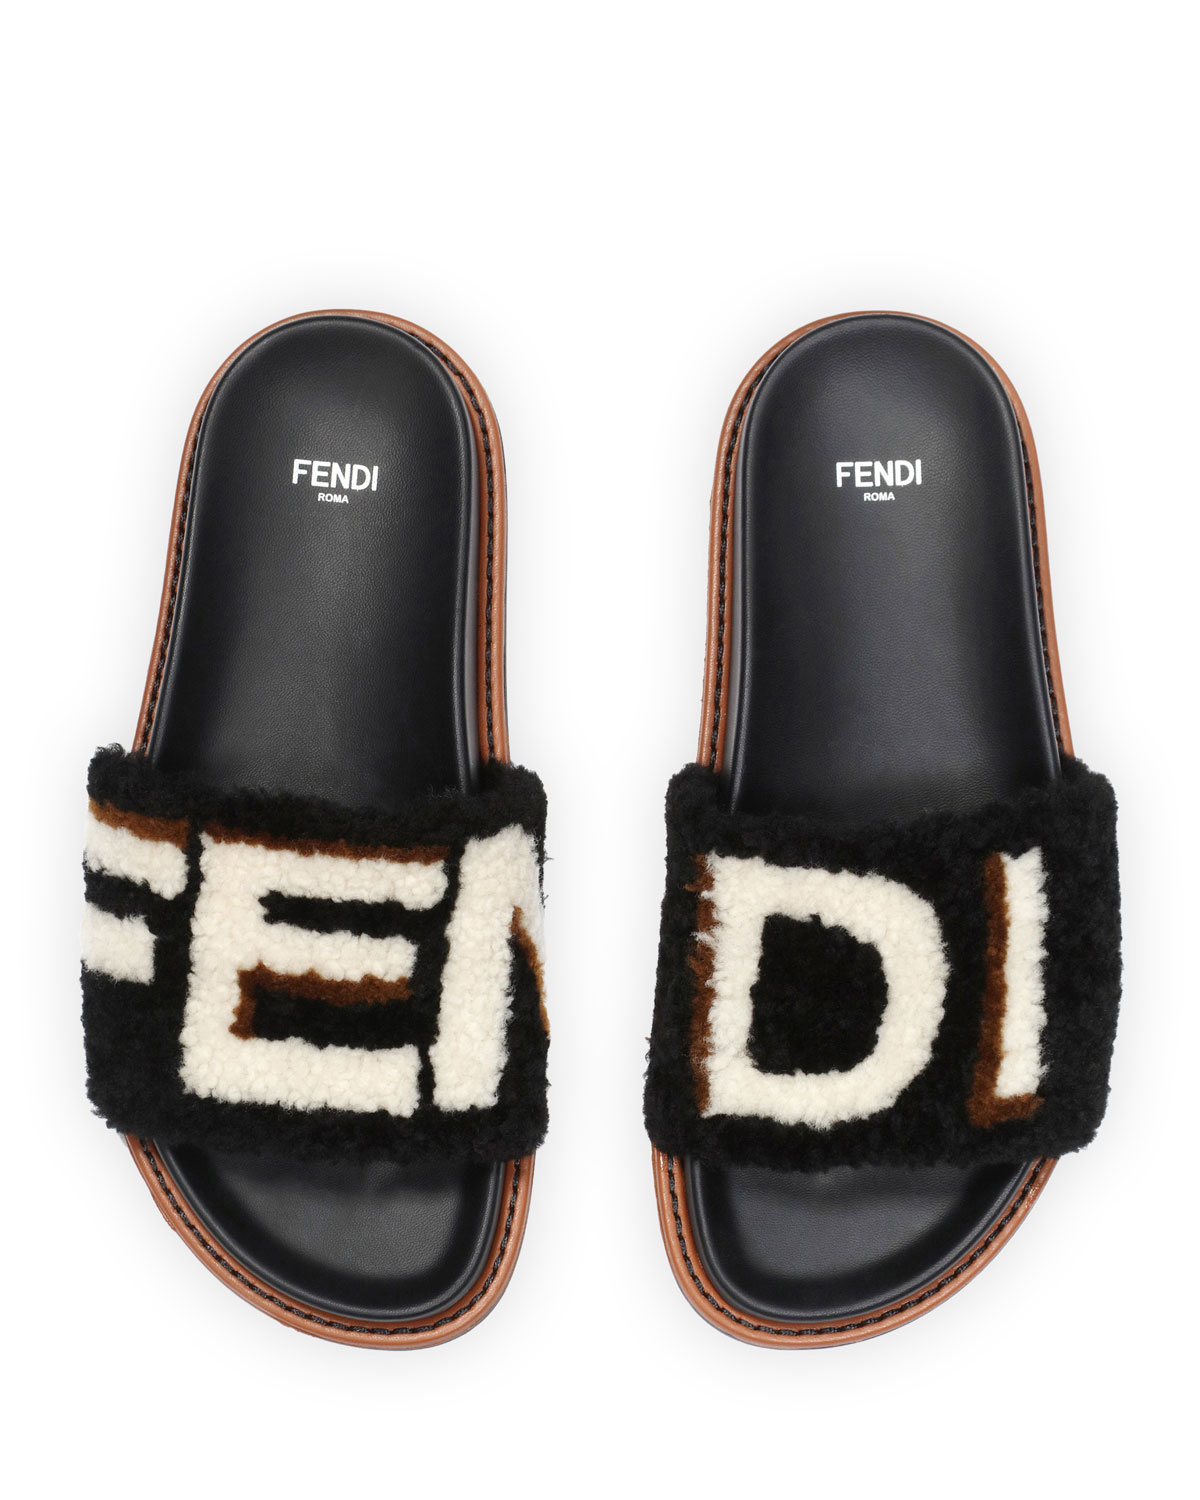 8112be40e Fendi Shearling Logo Slide Sandal, Black | Neiman Marcus